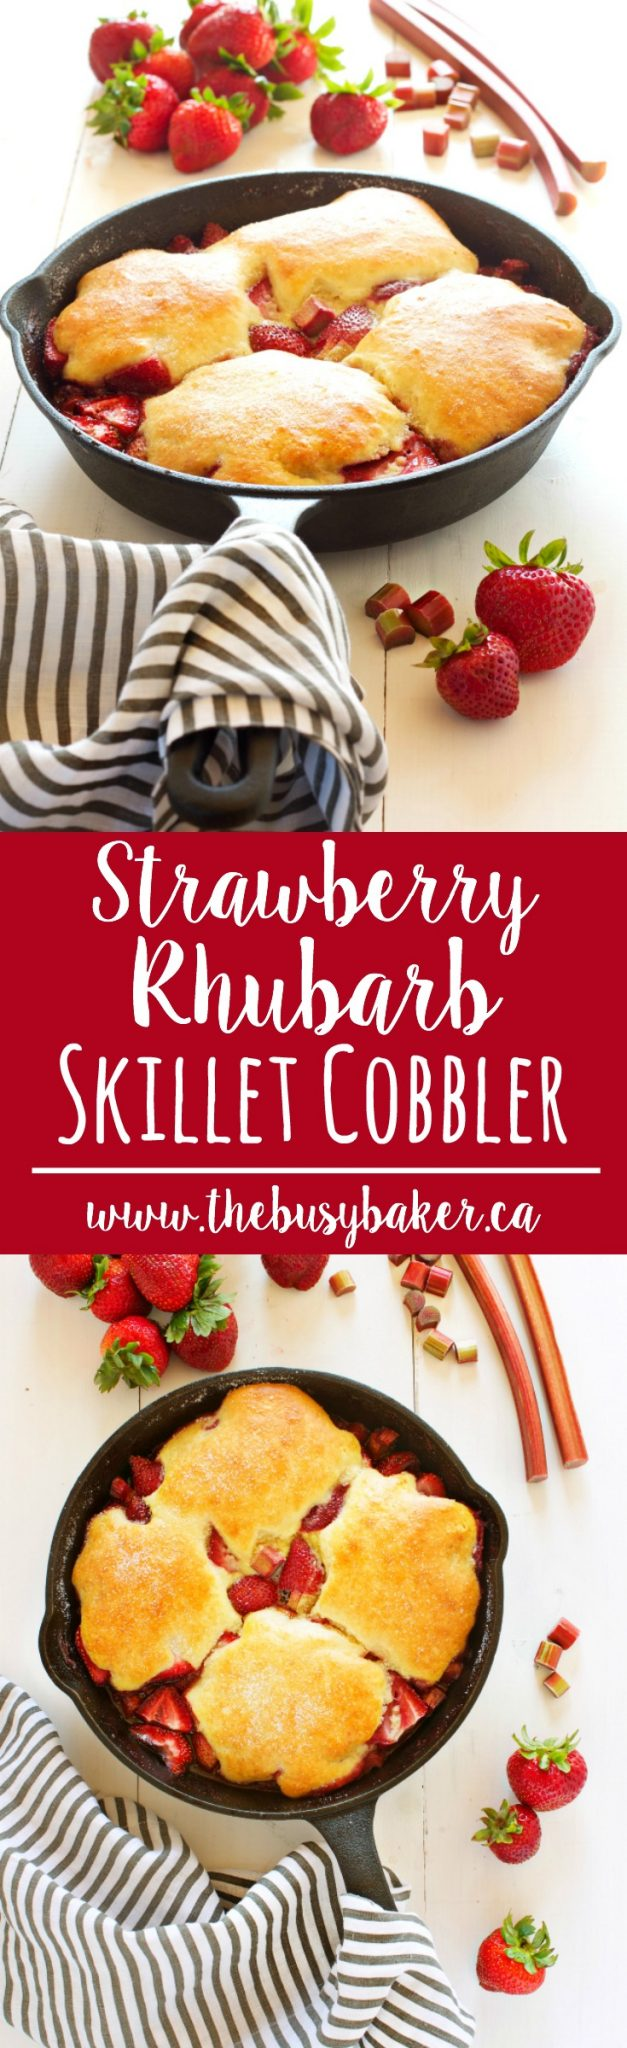 This Strawberry Rhubarb Skillet Cobbler is everybody's old-fashioned family favorite summer dessert recipe featuring fresh sweet strawberries and rhubarb! Recipe from thebusybaker.ca! via @busybakerblog